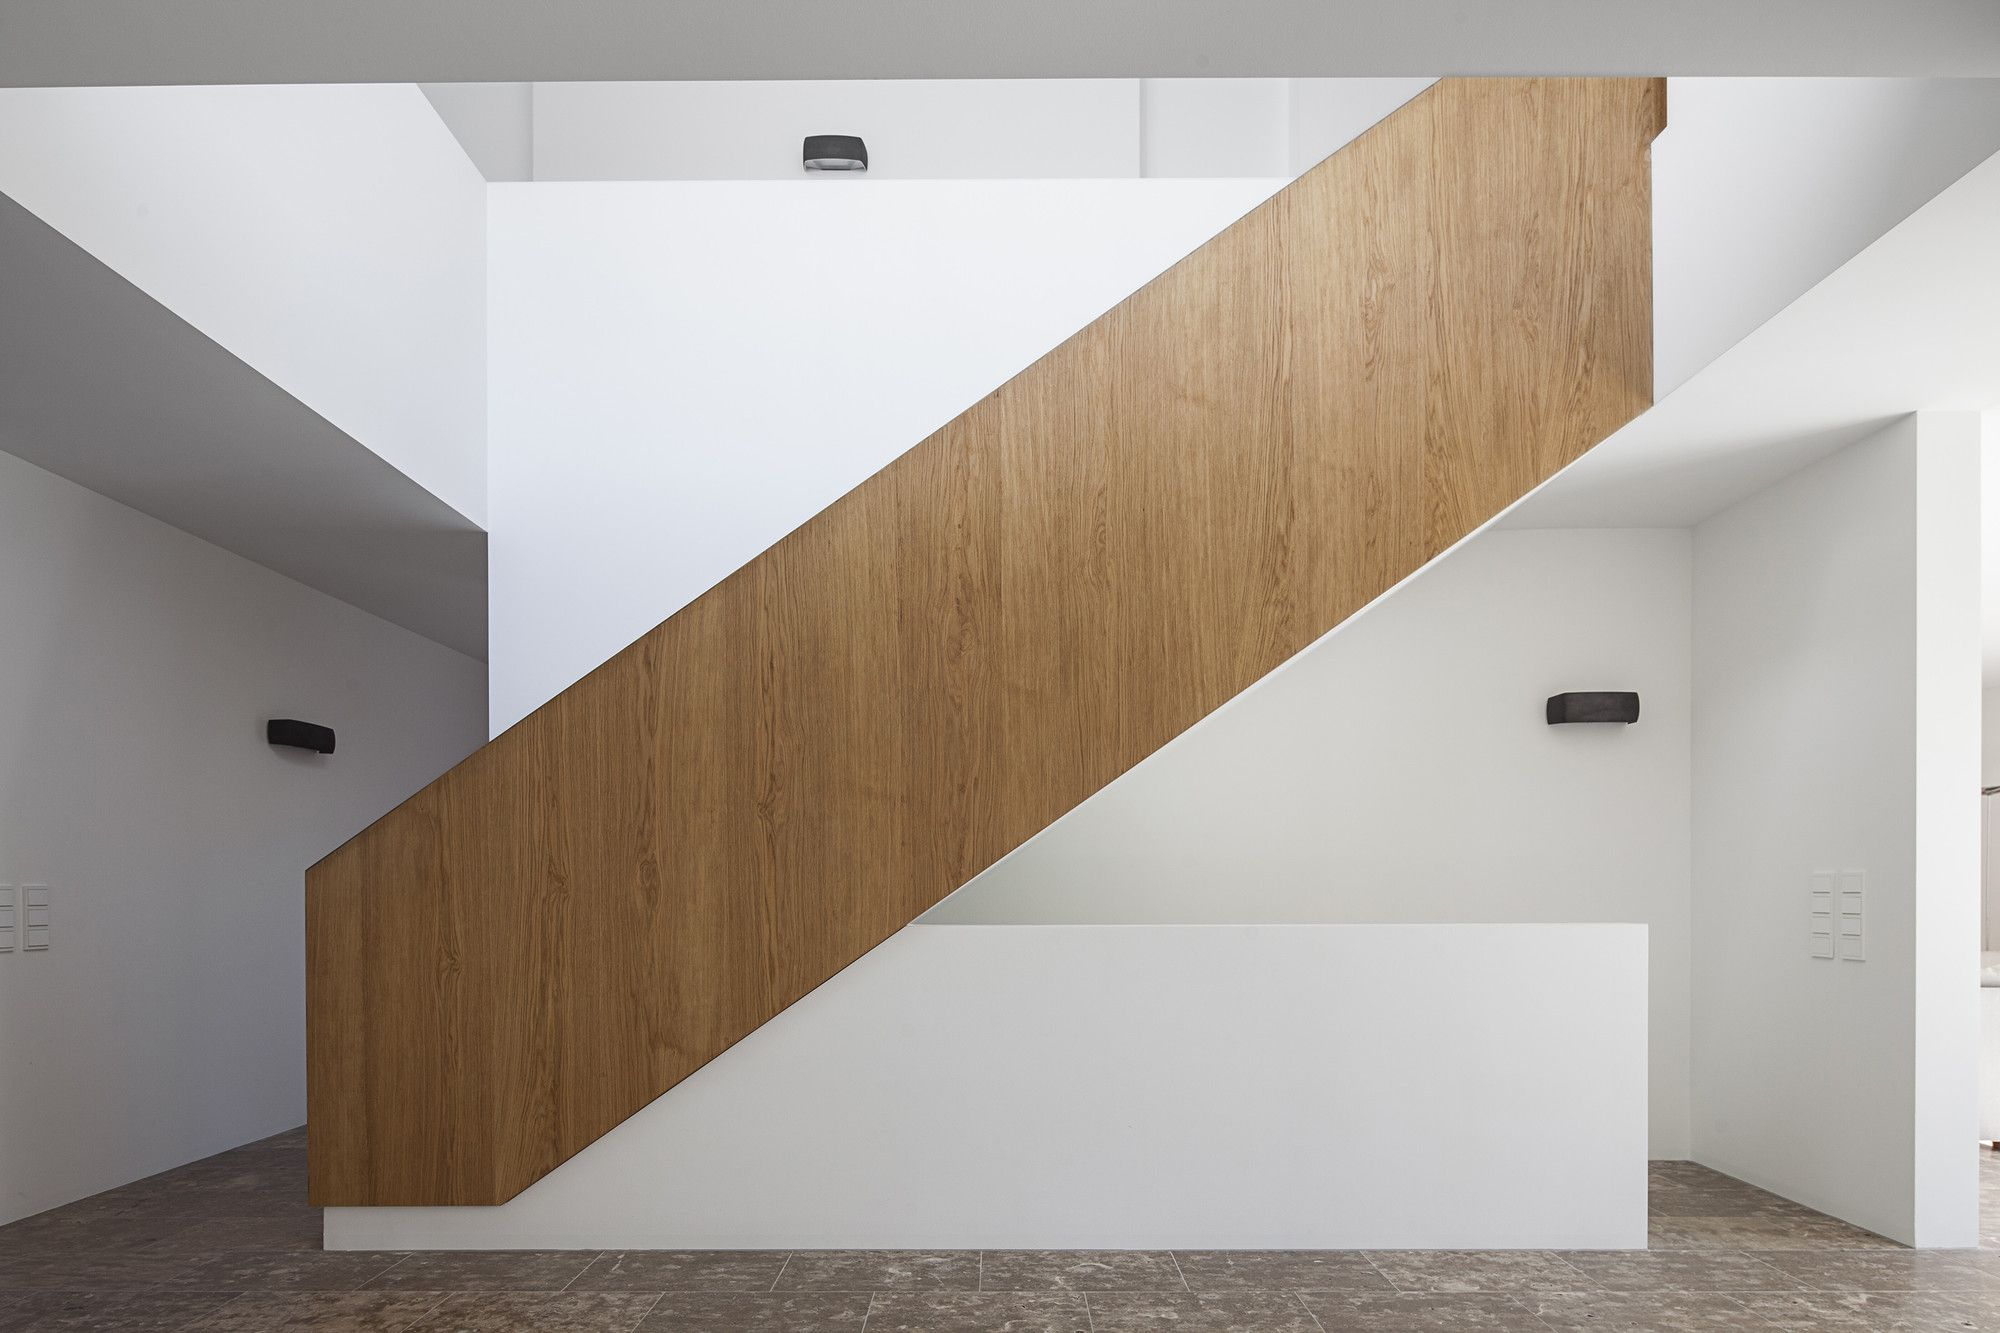 German Minimalistic House Brief Overview. Futuristic and minimalistic staircase with handrails in the white interior